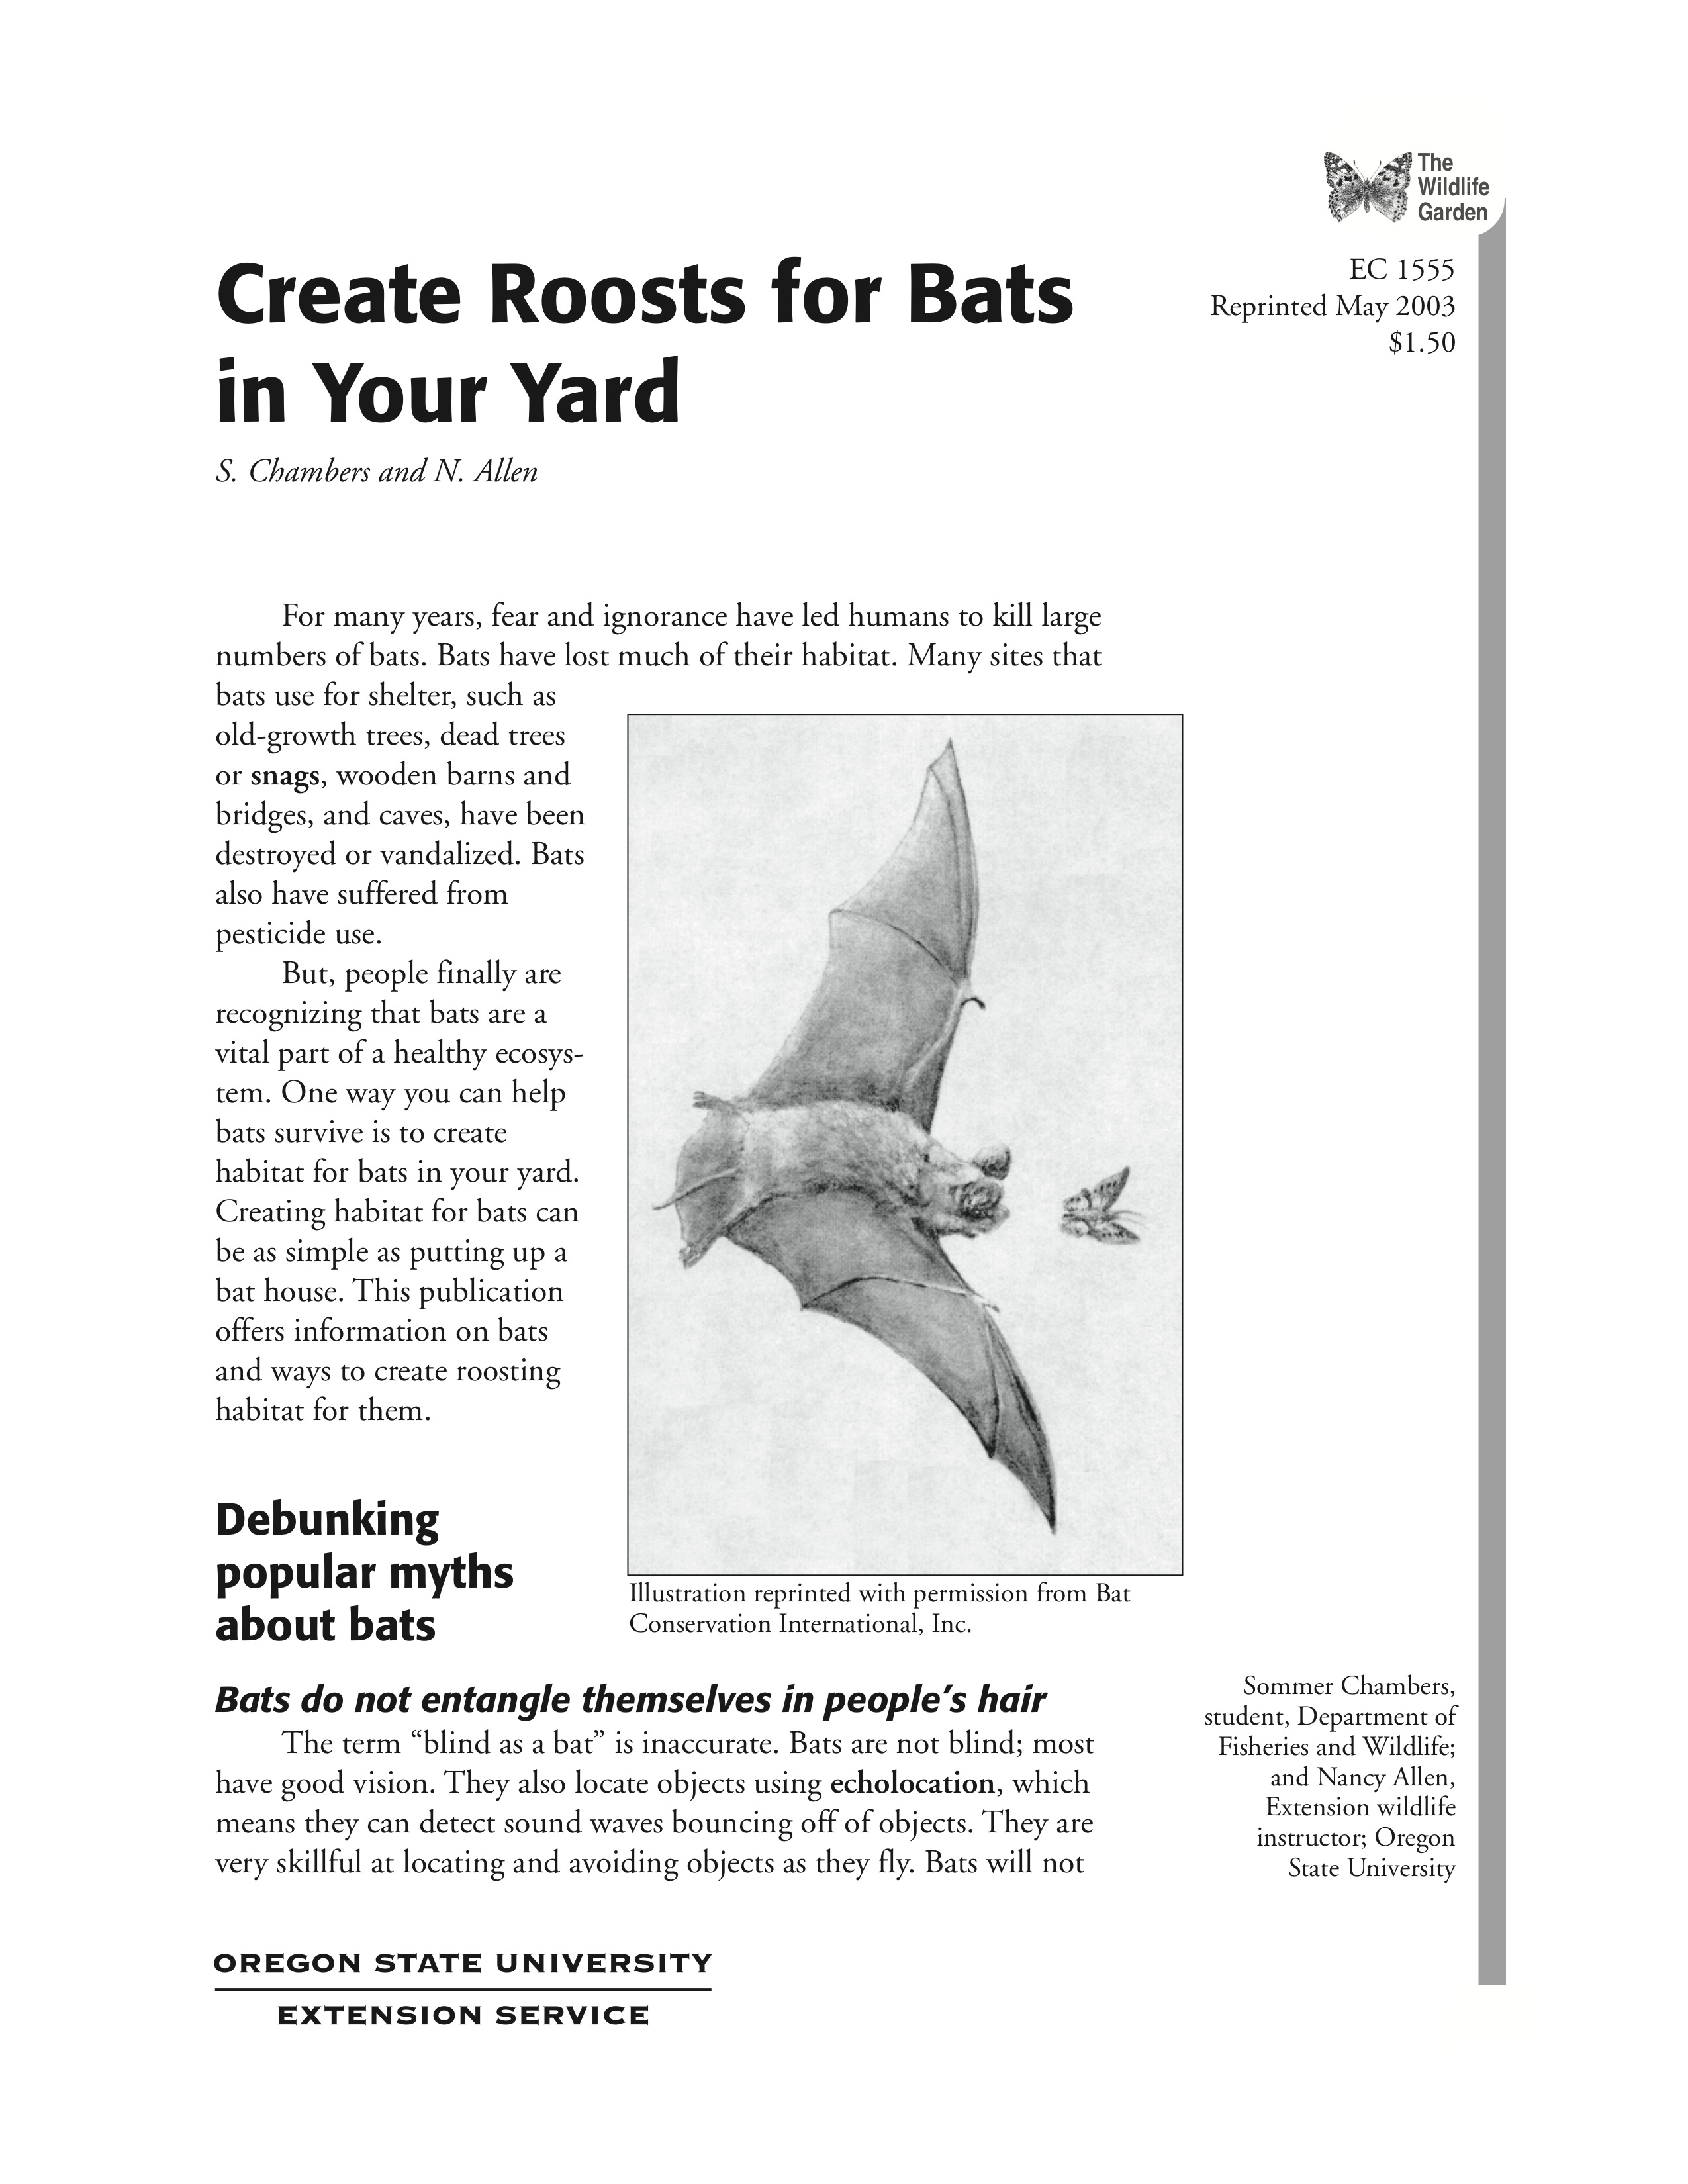 The Wildlife Garden Create Roosts For Bats In Your Yard Osu